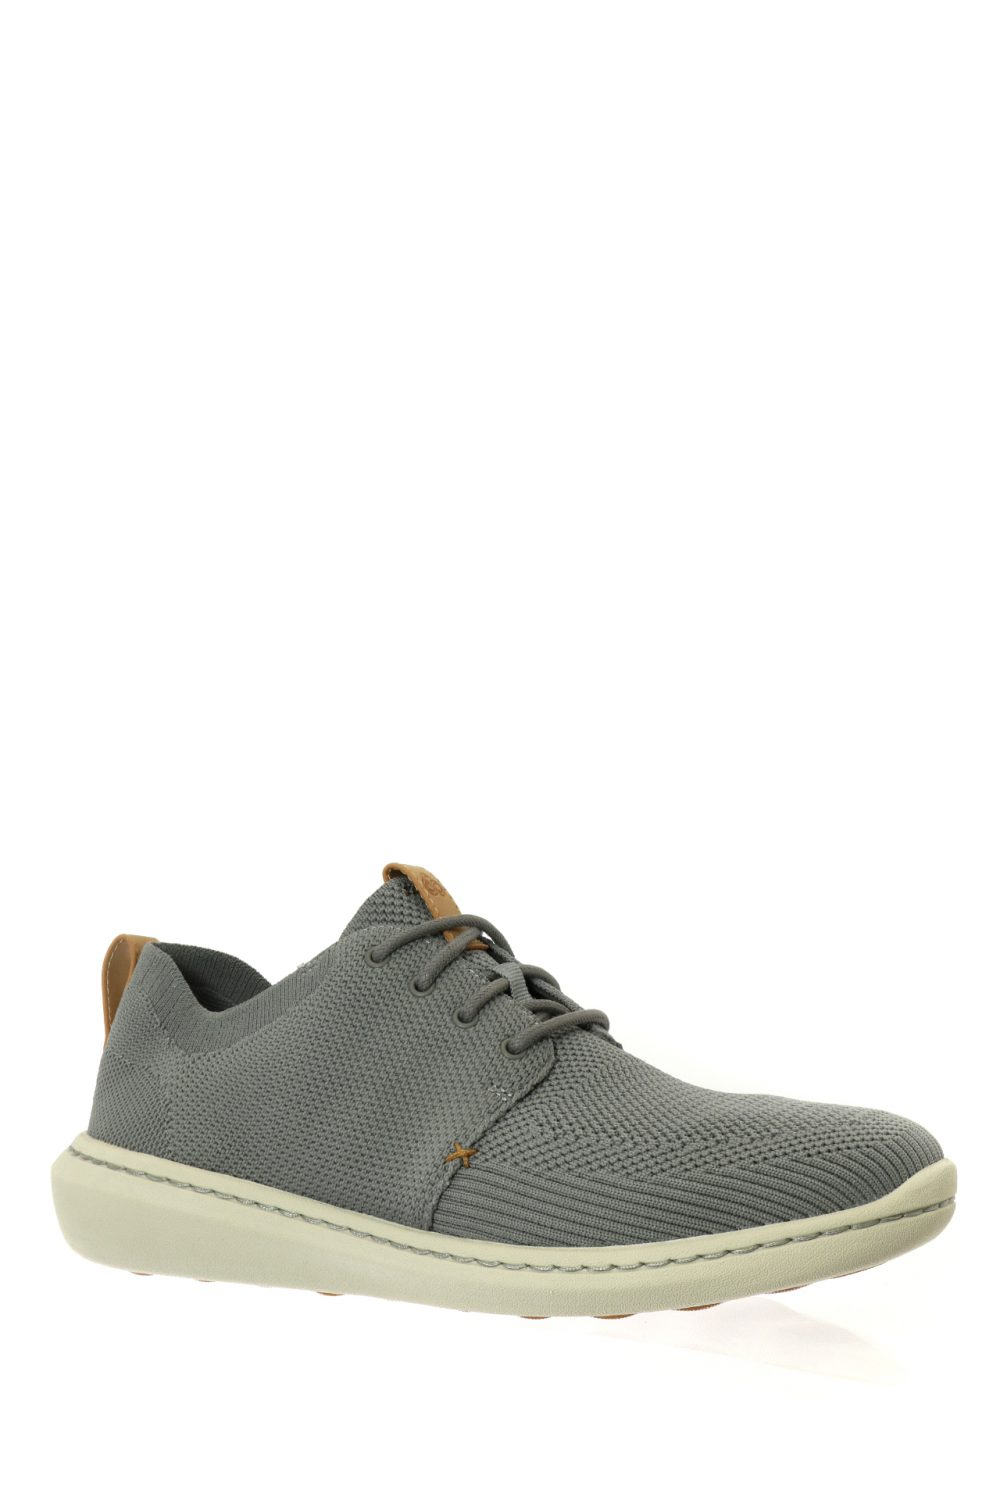 Clarks STEP URBAN MIX